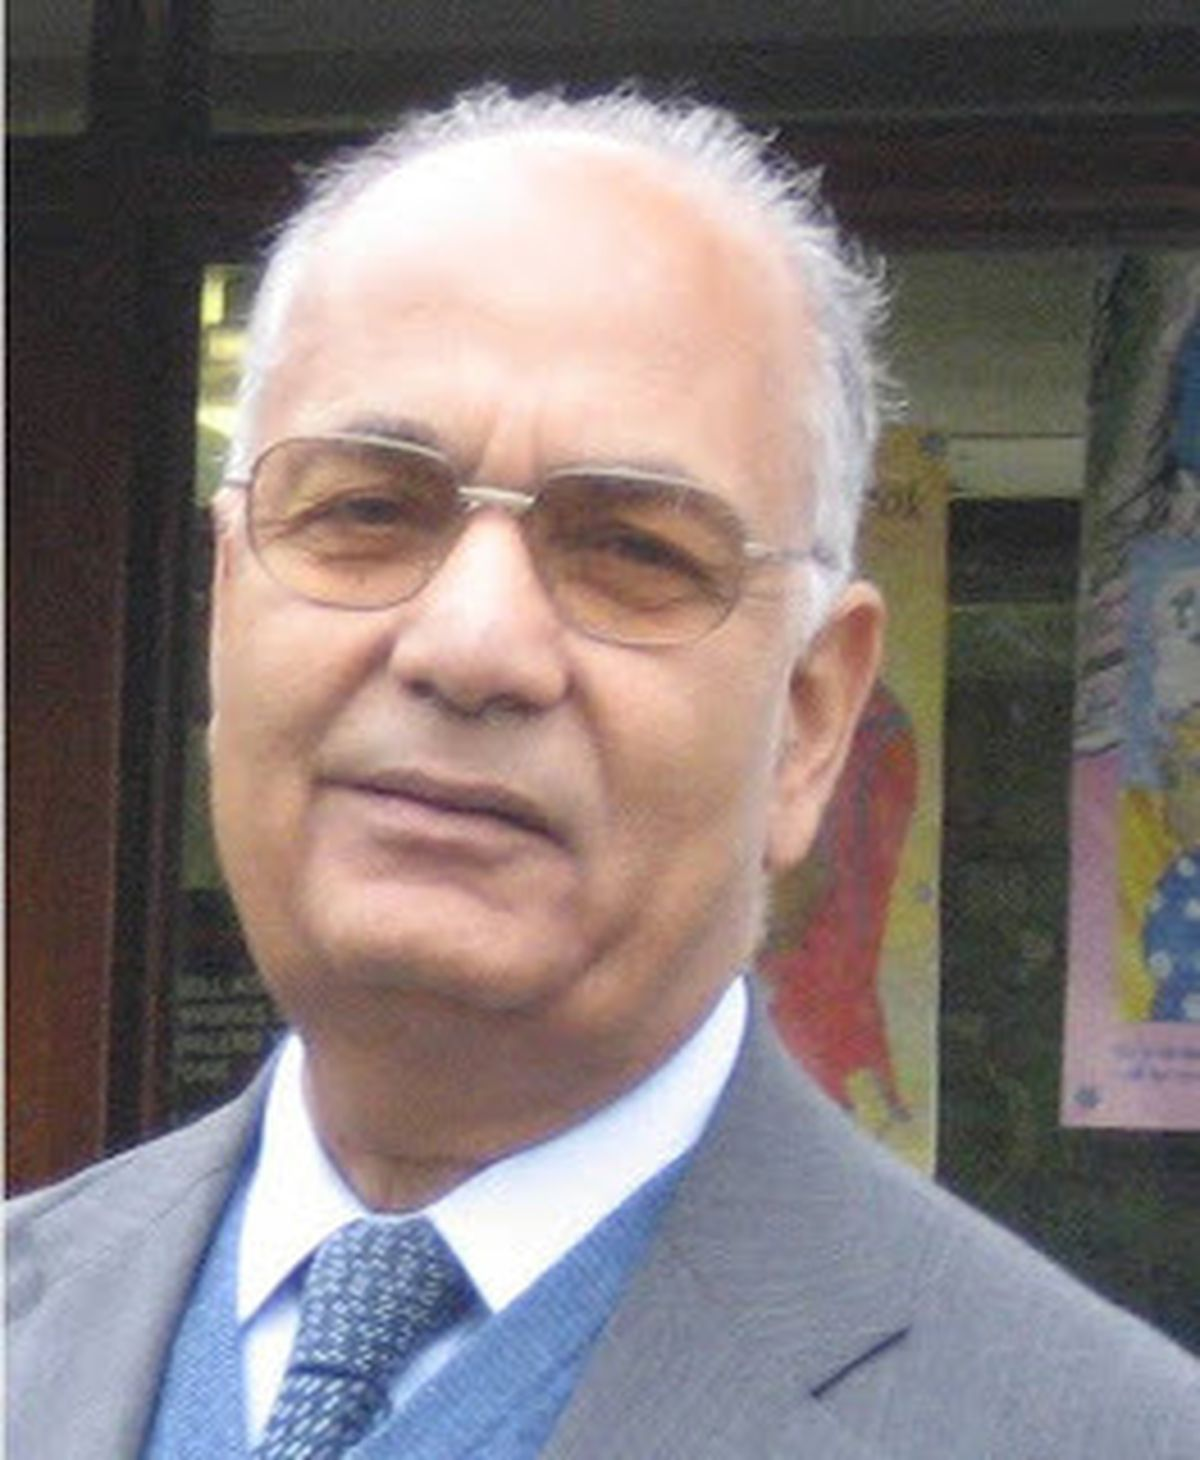 Pleck councillor Harbans Sarohi passed away earlier this year after more than 20 years on Walsall Council